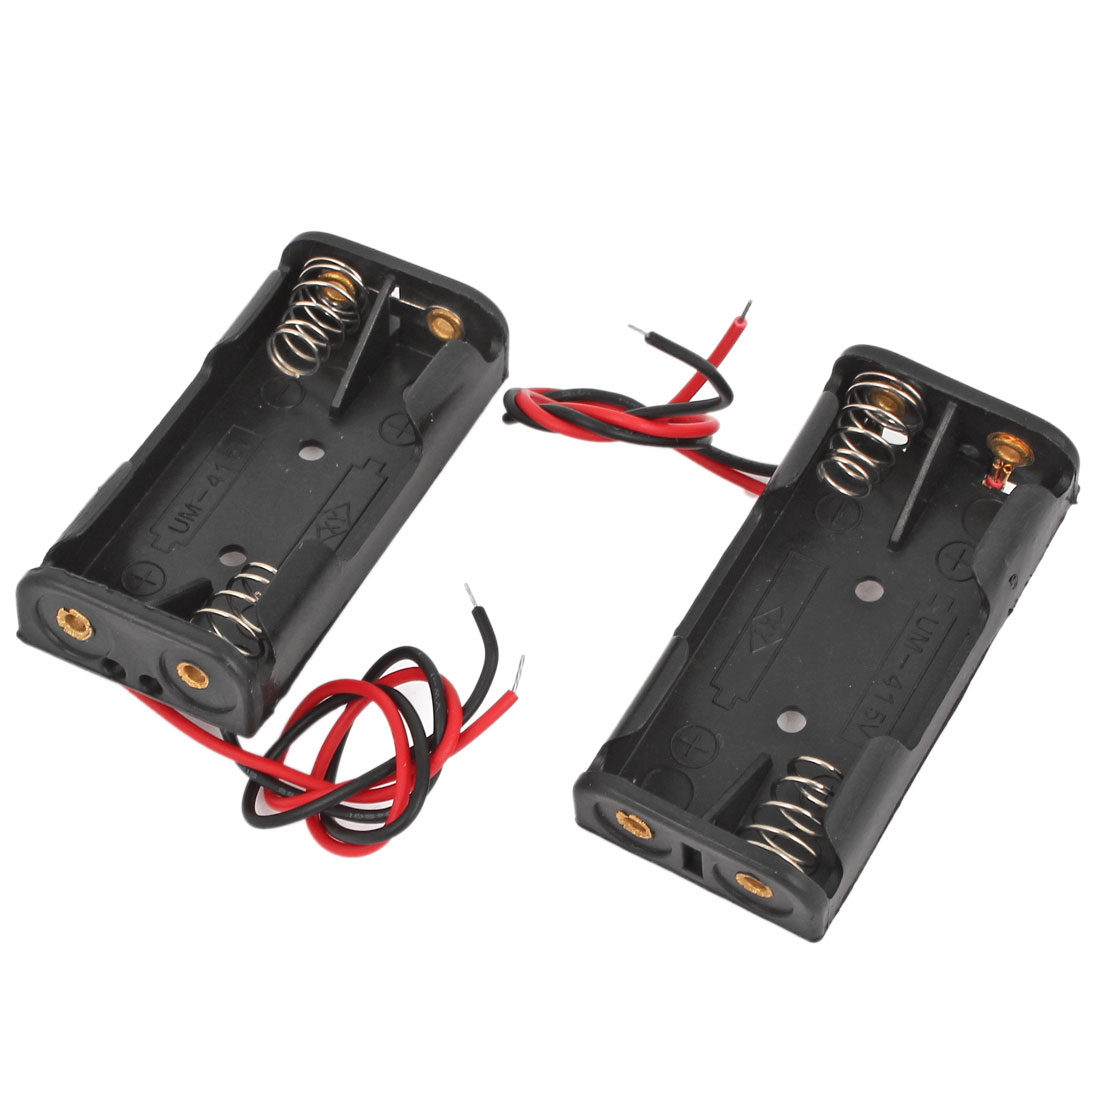 2pcs 15cm Black Red 2 Wires Cable Connectors 2 x AAA Battery Box Case Holder